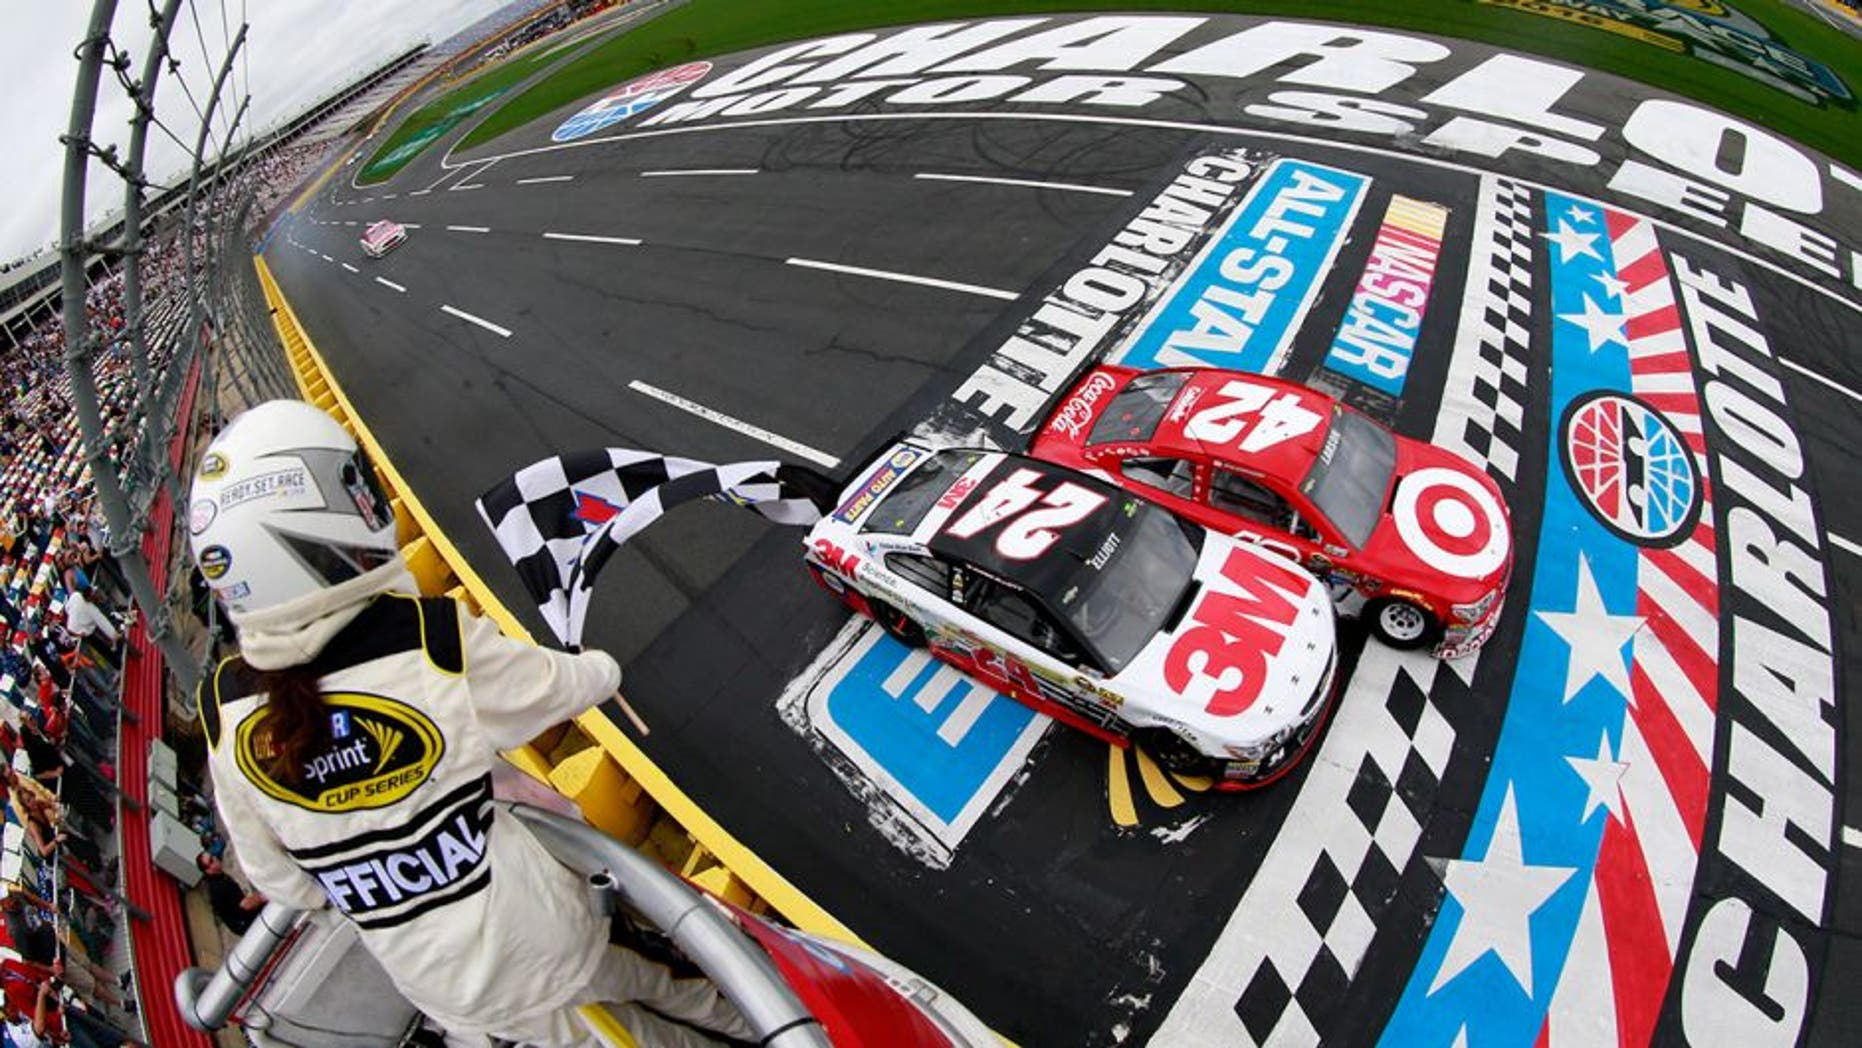 CHARLOTTE, NC - MAY 21: Kyle Larson, driver of the #42 Target Chevrolet, takes the checkered flag against Chase Elliott, driver of the #24 3M Chevrolet, to win the third segment of the NASCAR Sprint Cup Series Sprint Showdown at Charlotte Motor Speedway on May 21, 2016 in Charlotte, North Carolina. (Photo by Matt Sullivan/NASCAR via Getty Images)